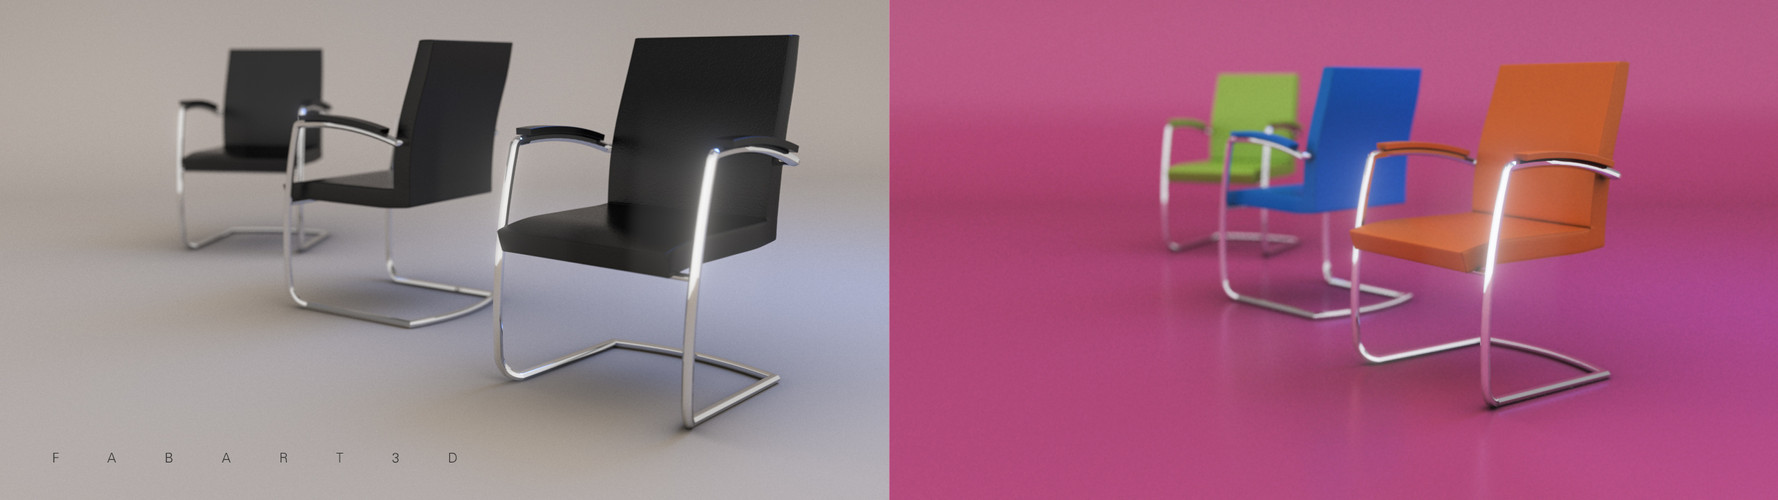 chair-Color.jpg